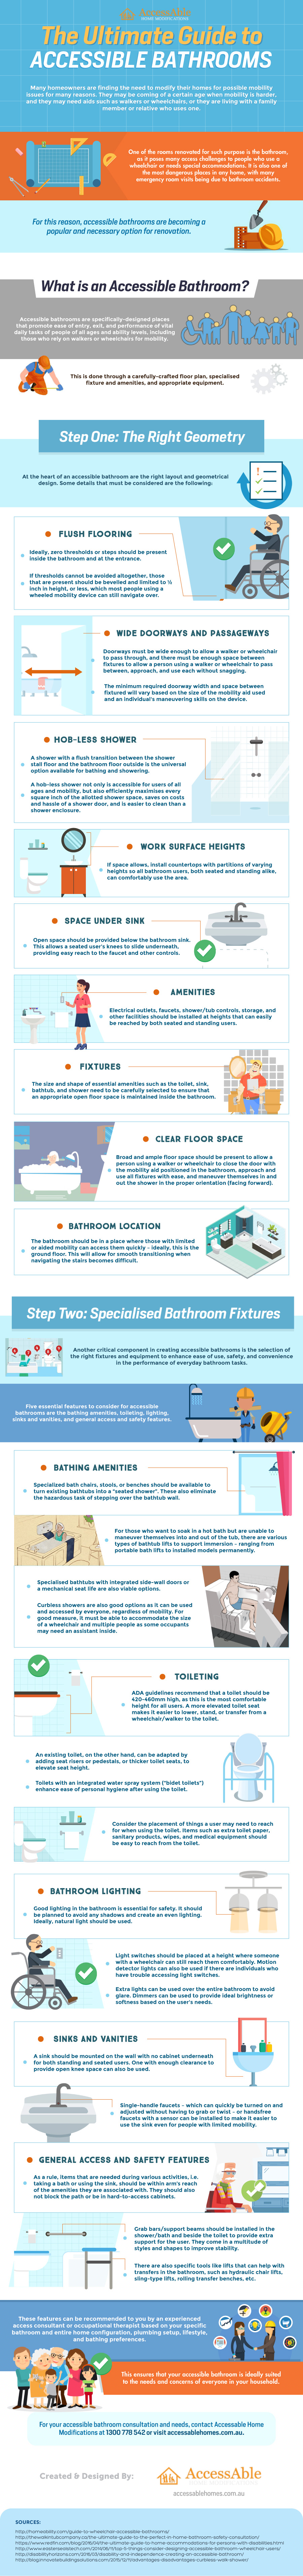 The Ultimate Guide to Accessible Bathrooms [Infographic]